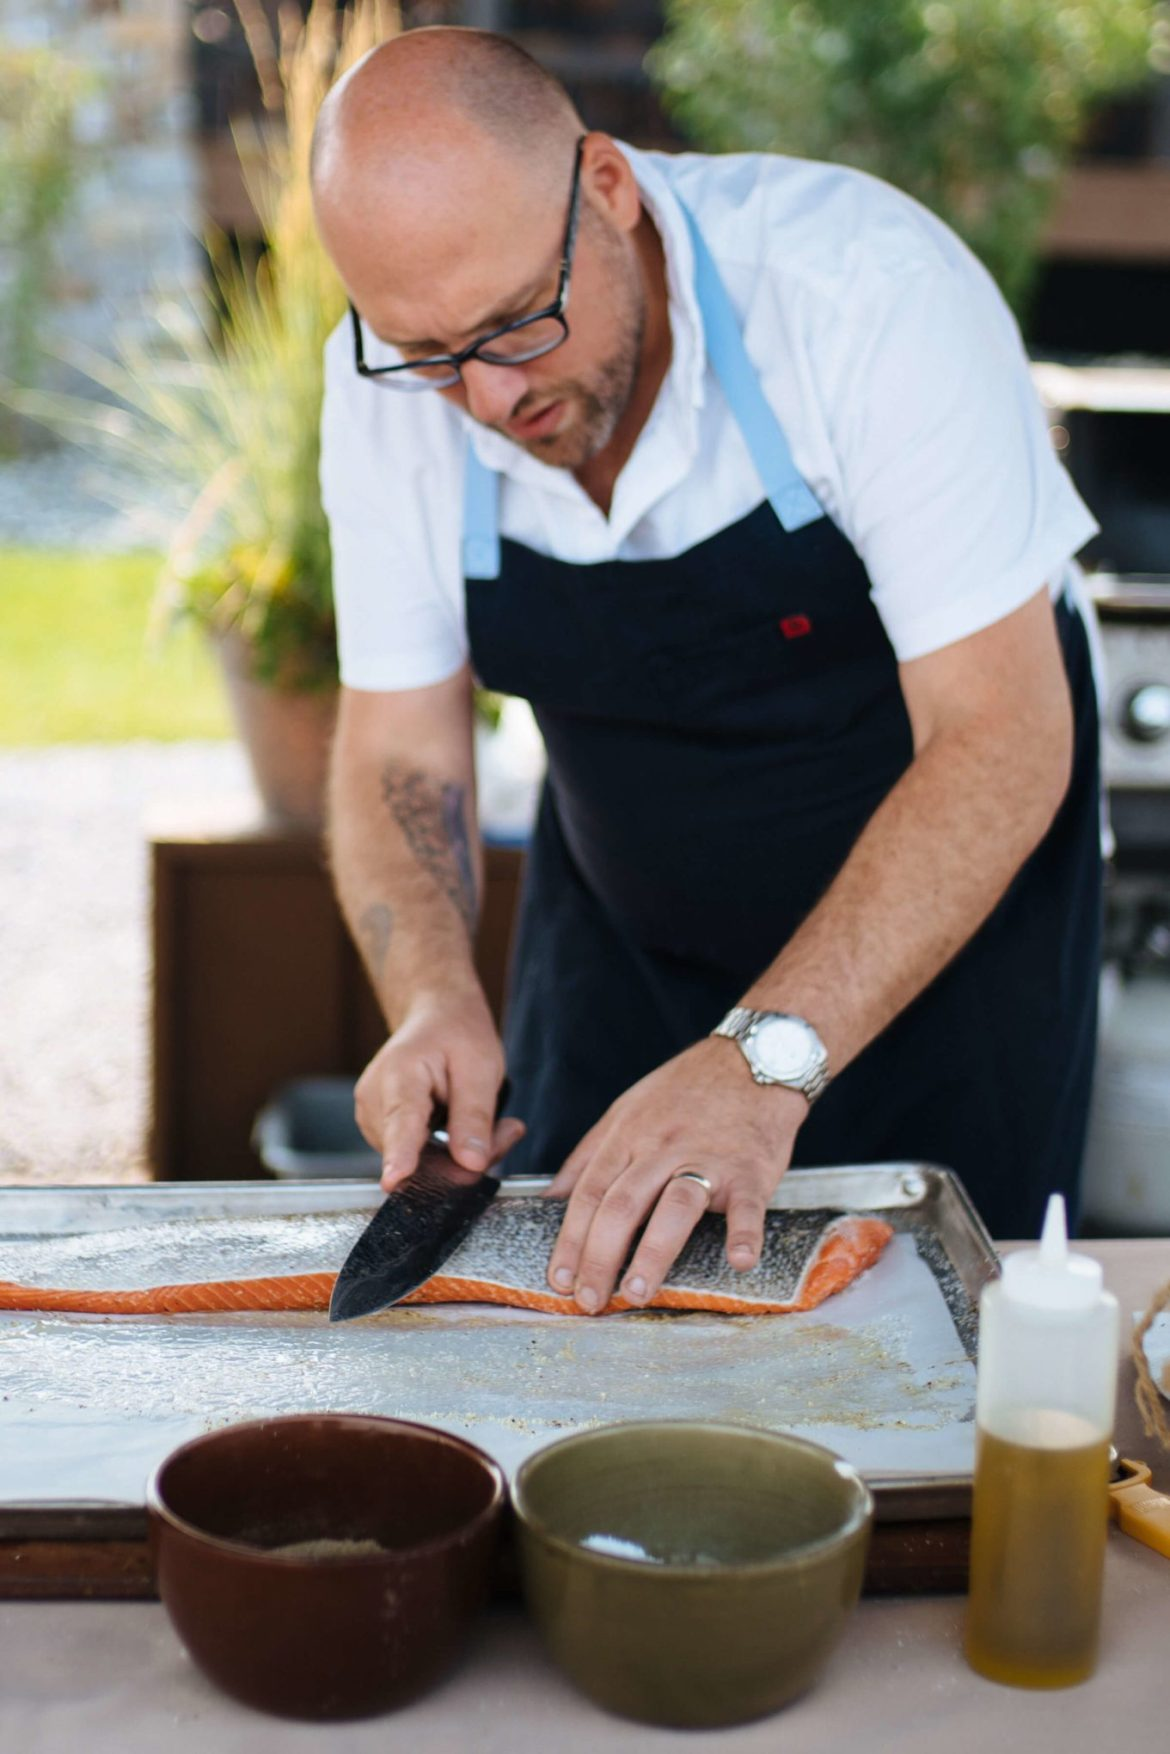 How to grill salmon, score the skin of the salmon for a crispy fish skin, the resort at paws up, montana glamping, cookbook live, greg denton OX restaurant Portland, The Taste Edit